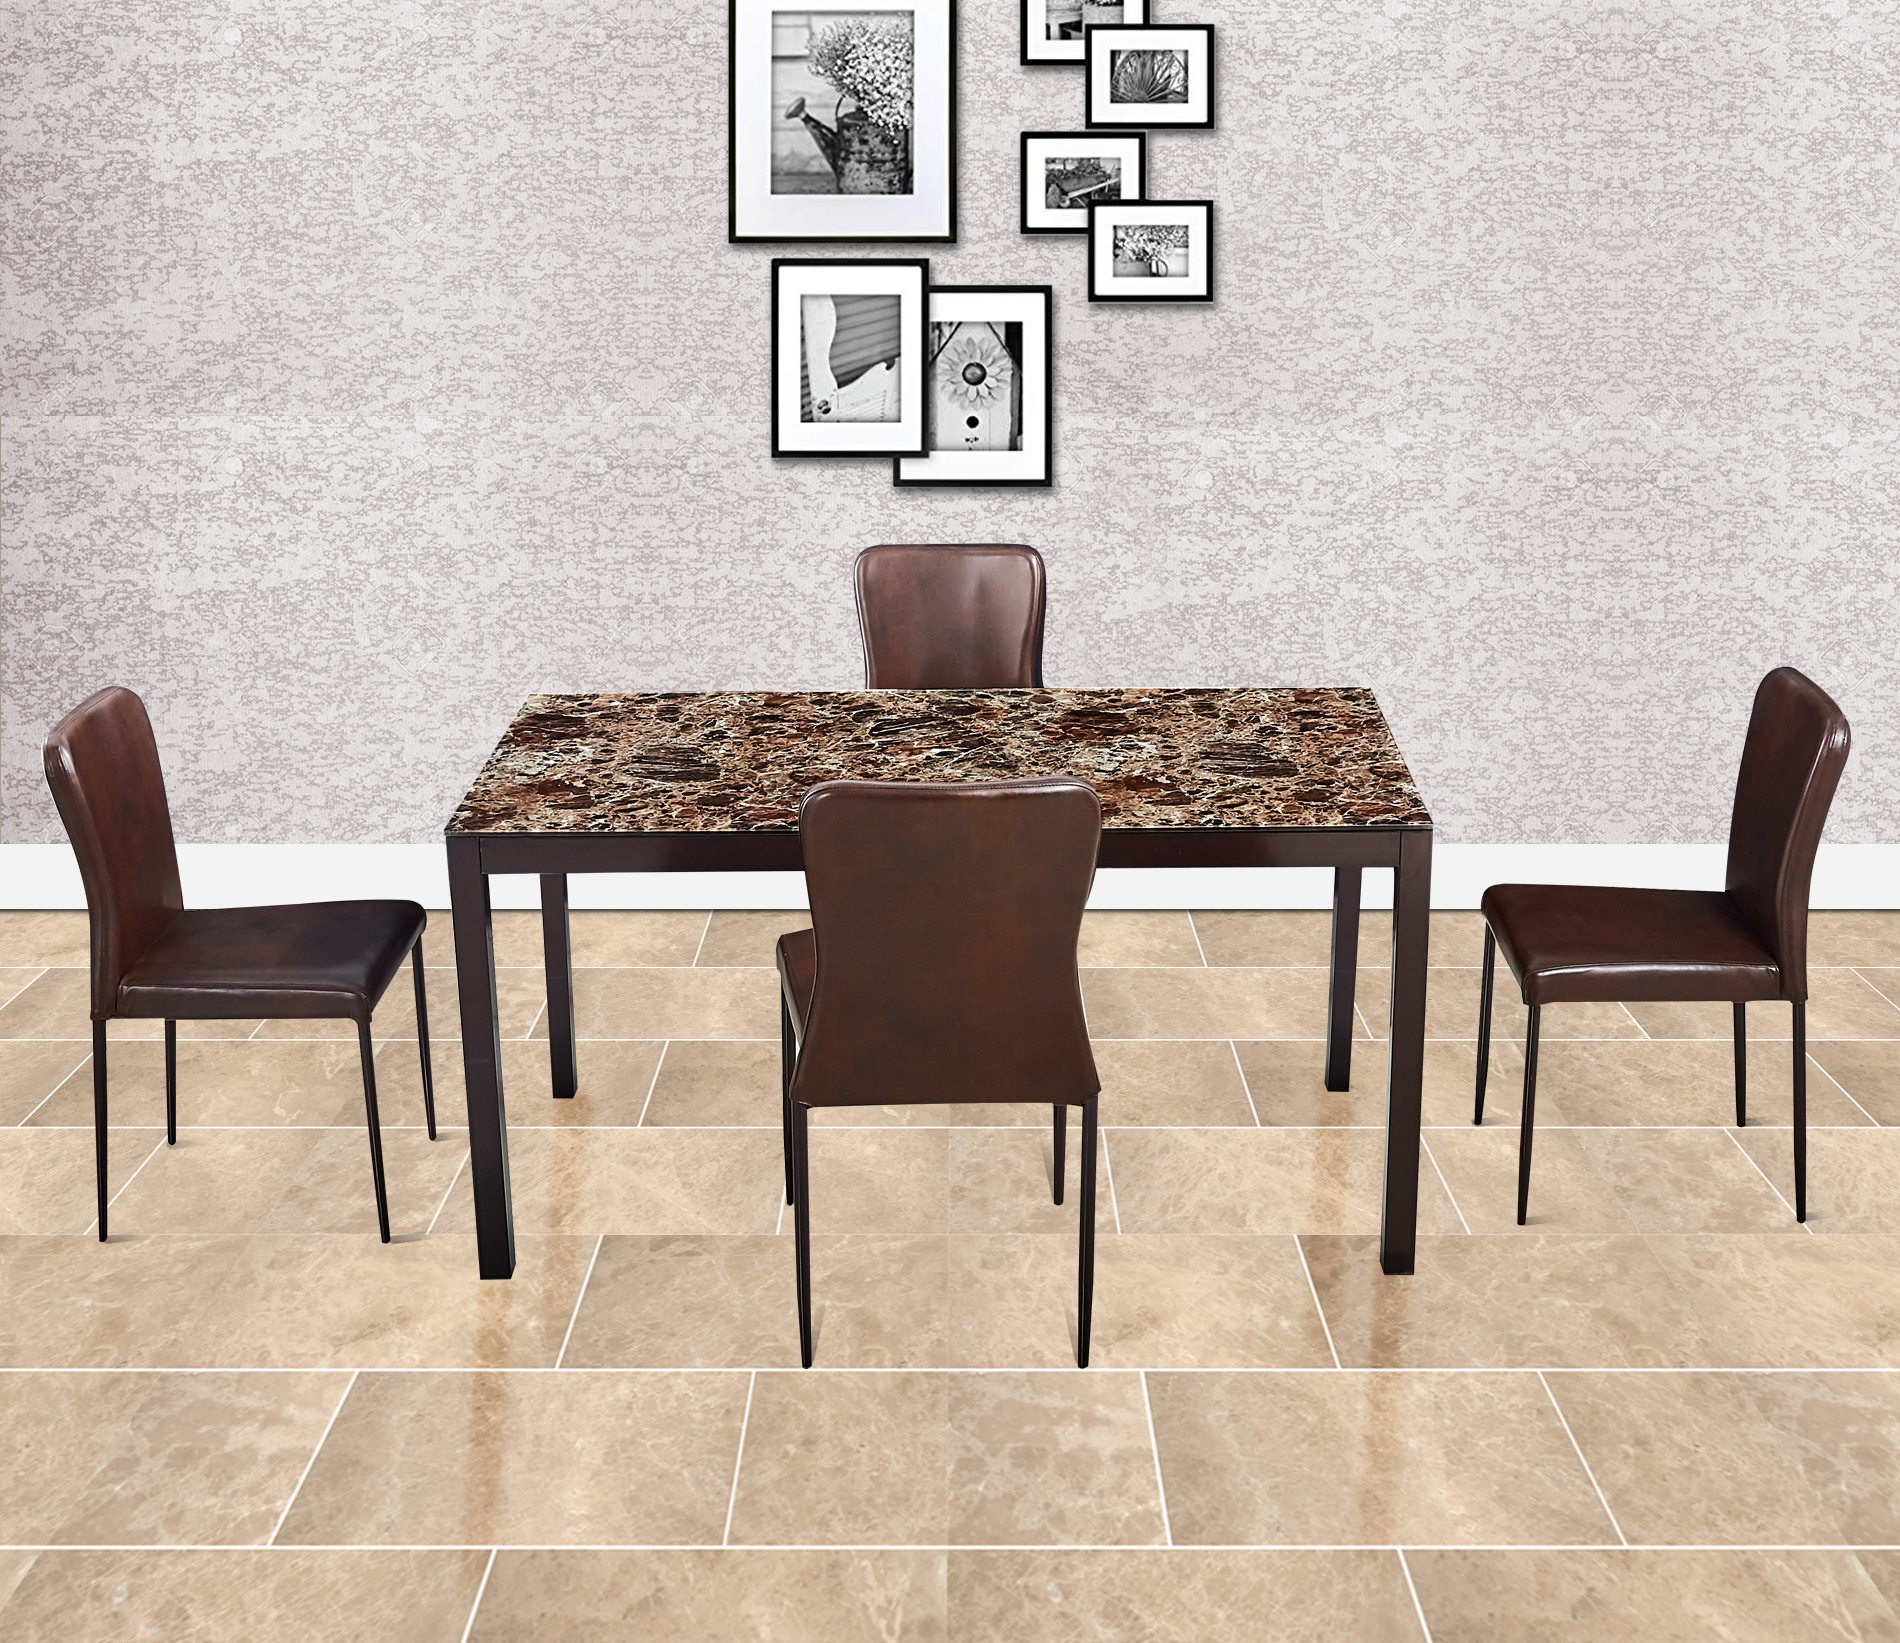 Modric Mild Steel Four Seater Dining Set in Brown Colour by HomeTown